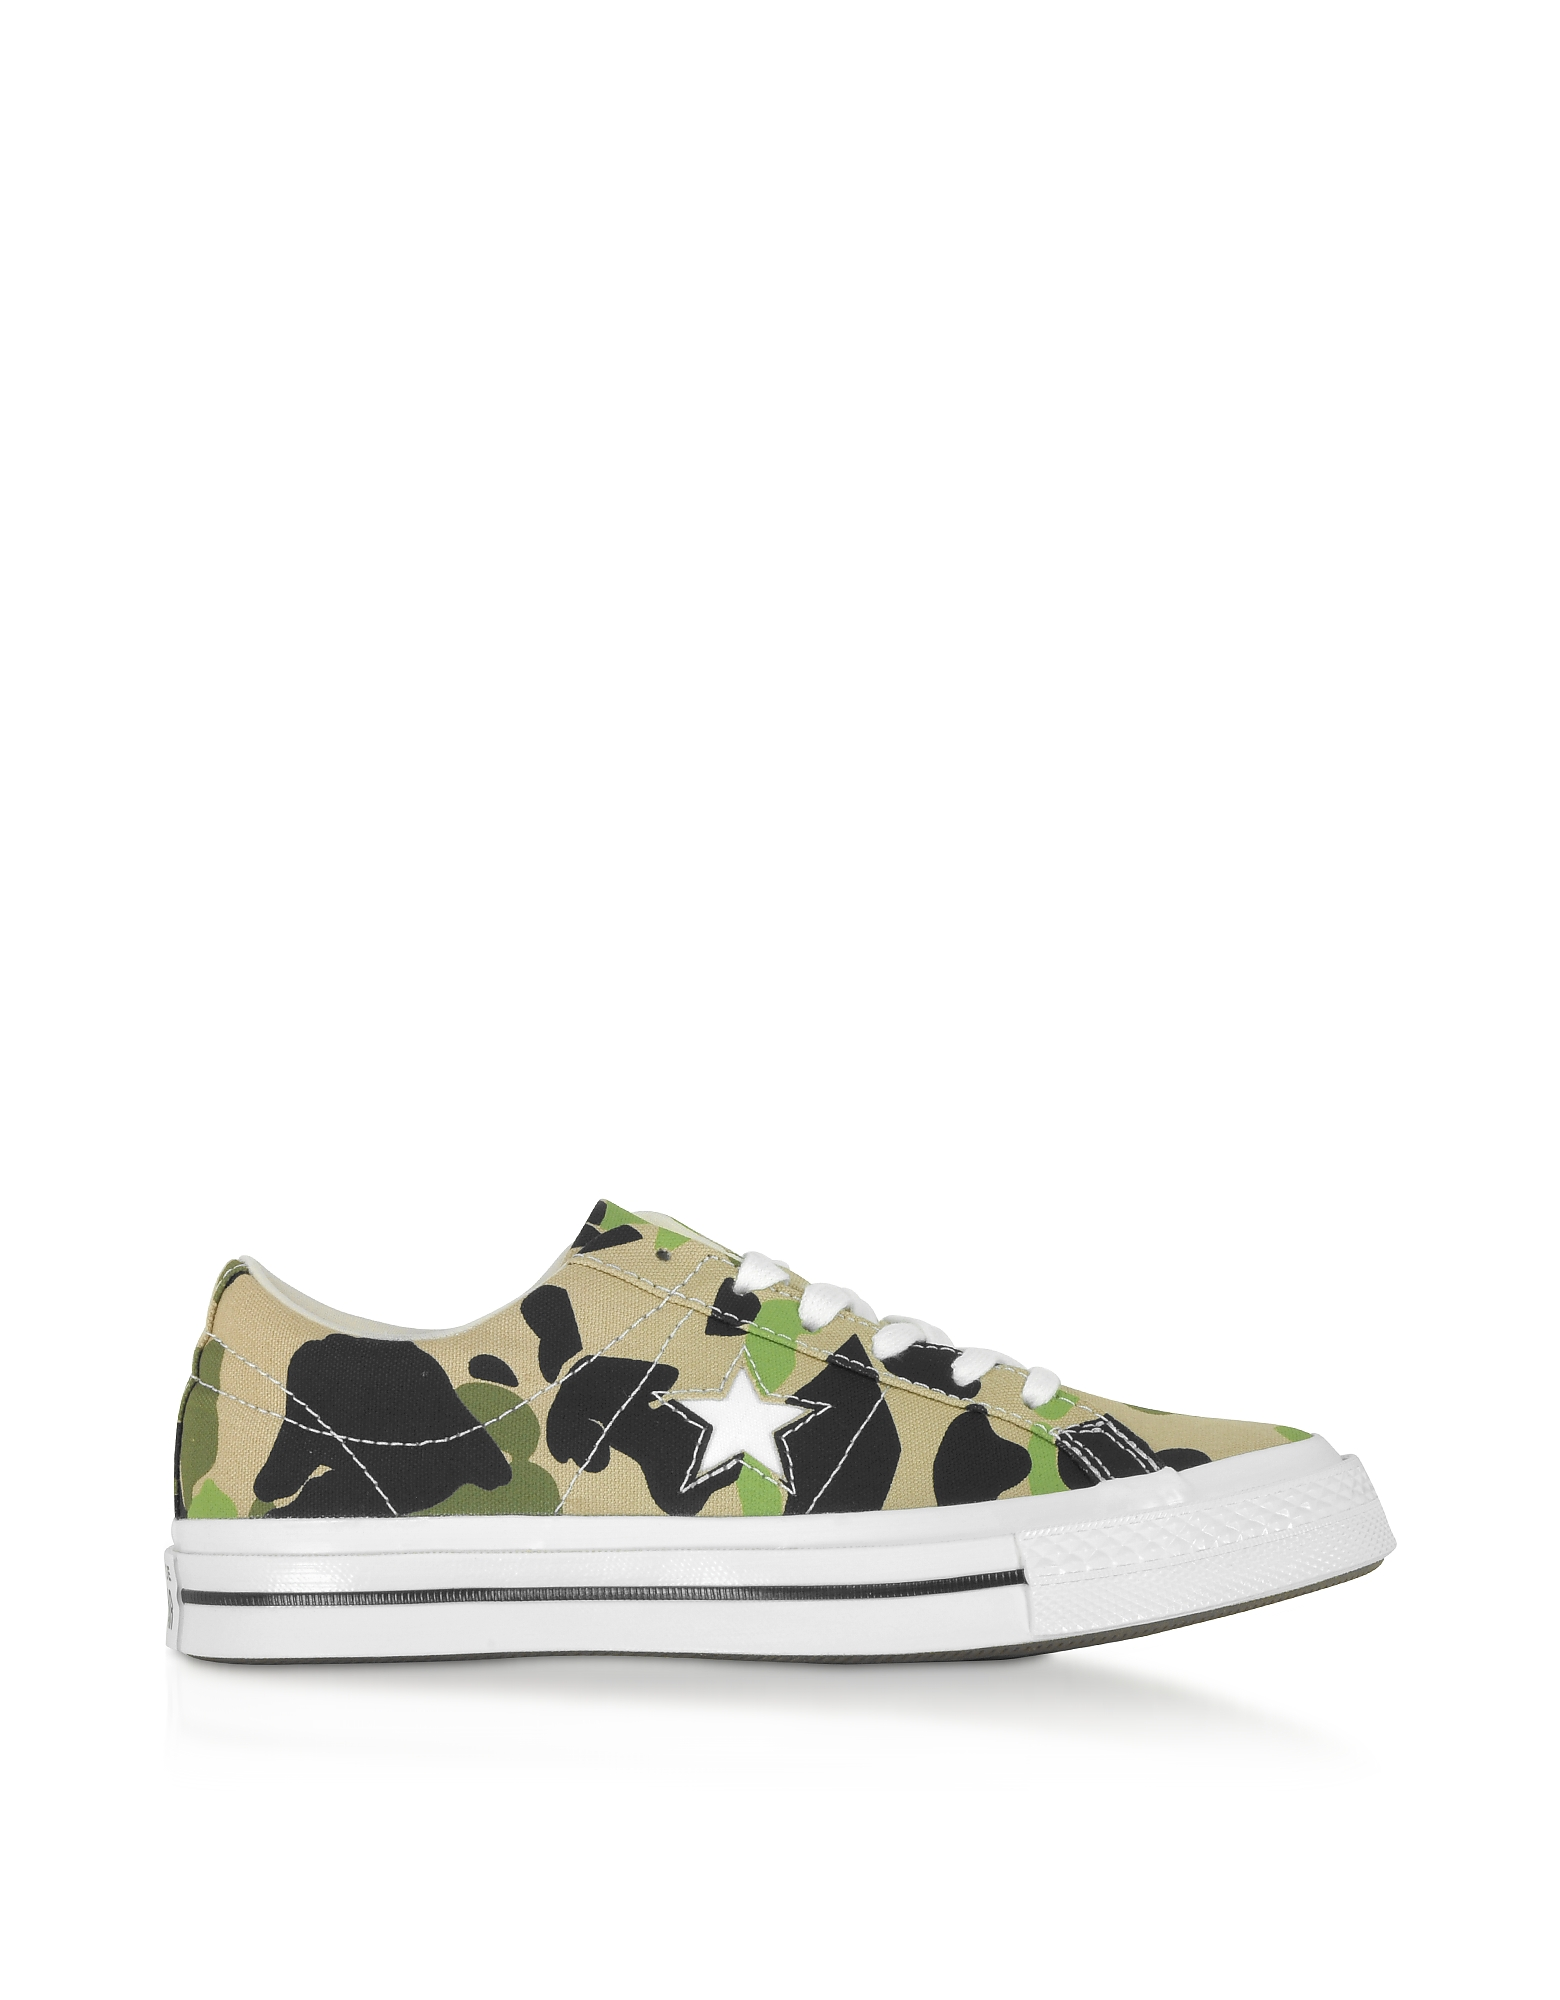 Converse Limited Edition Designer Shoes, One Star w/ Archive Prints Remix Low Top